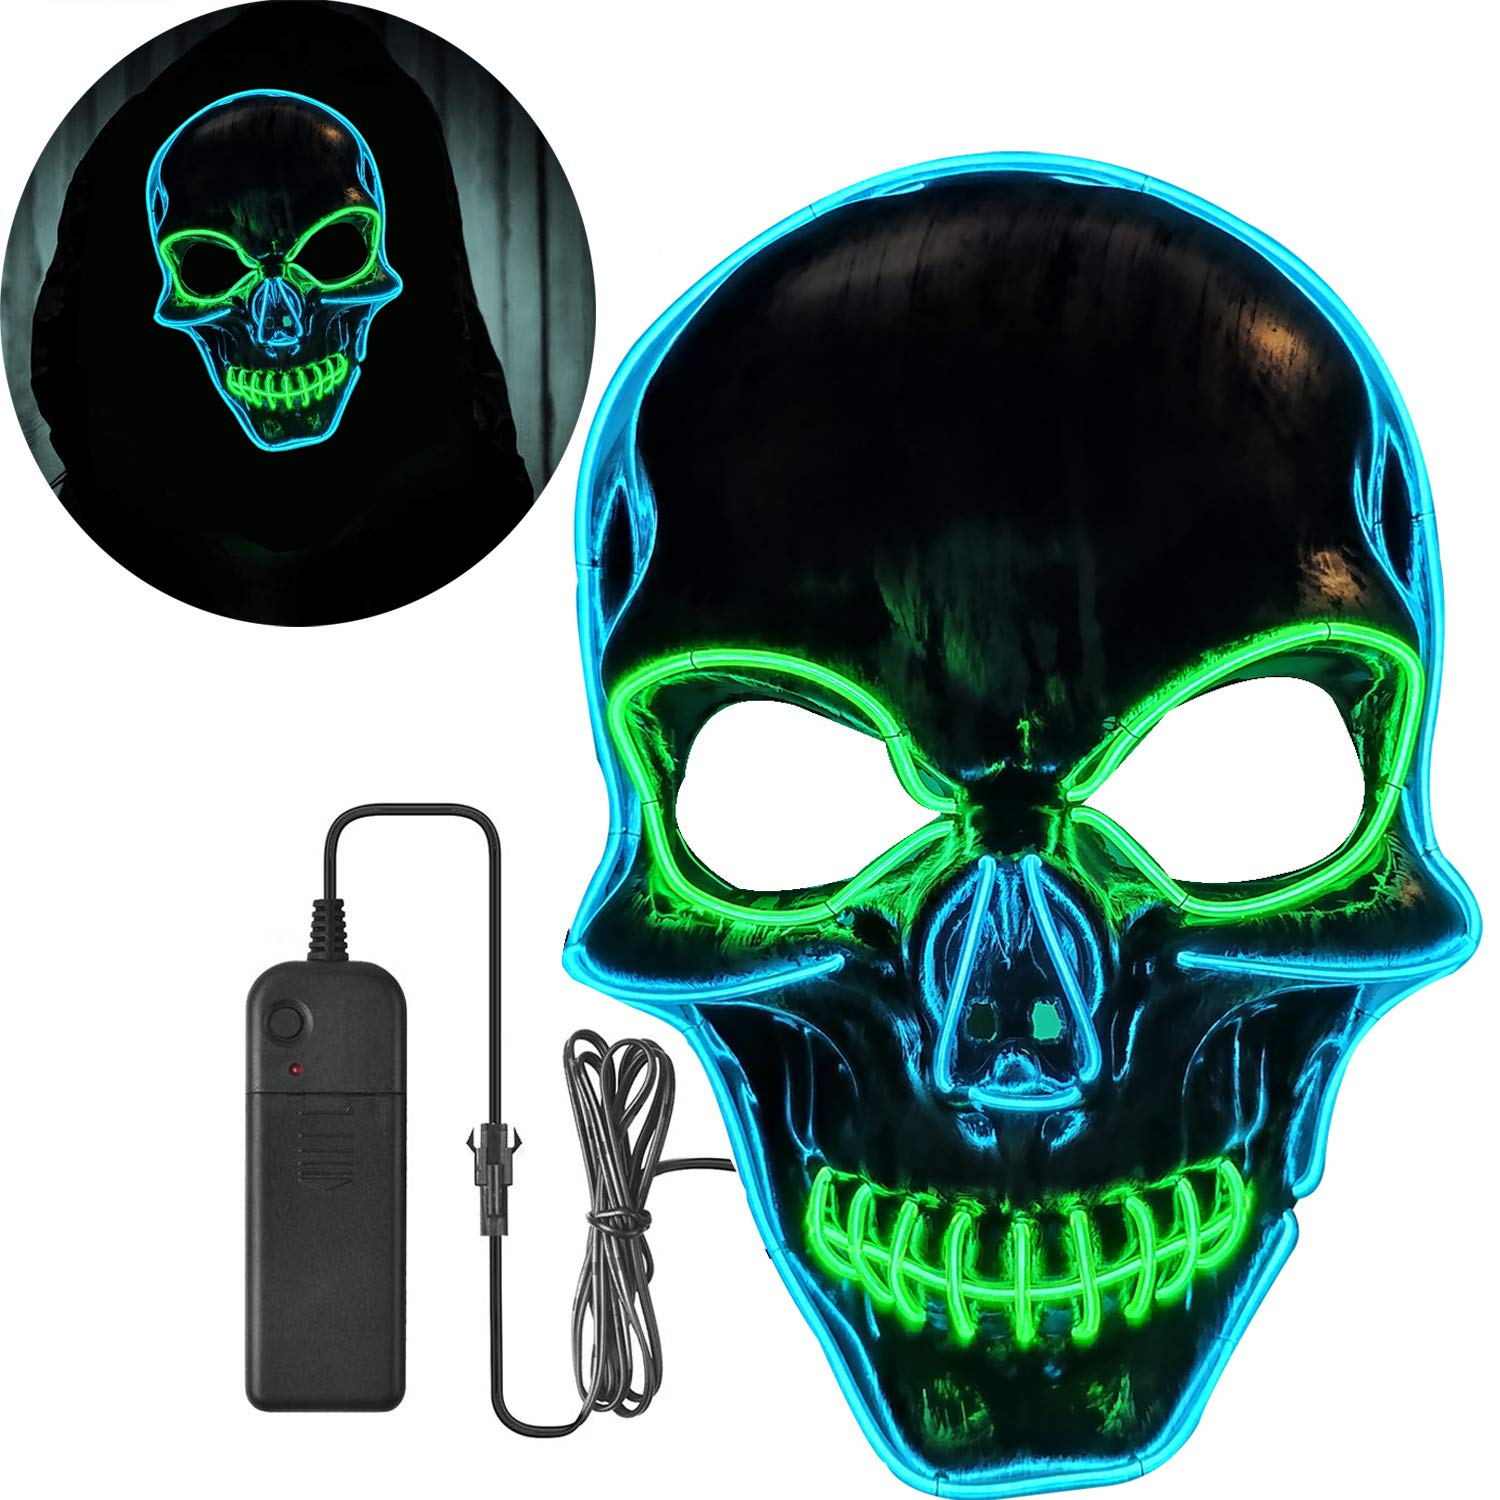 Yostyle Halloween Scary Pumpkin Mask Cosplay Decorations Led Costume Mask EL Wire Light up for Halloween Festival Party Yellow